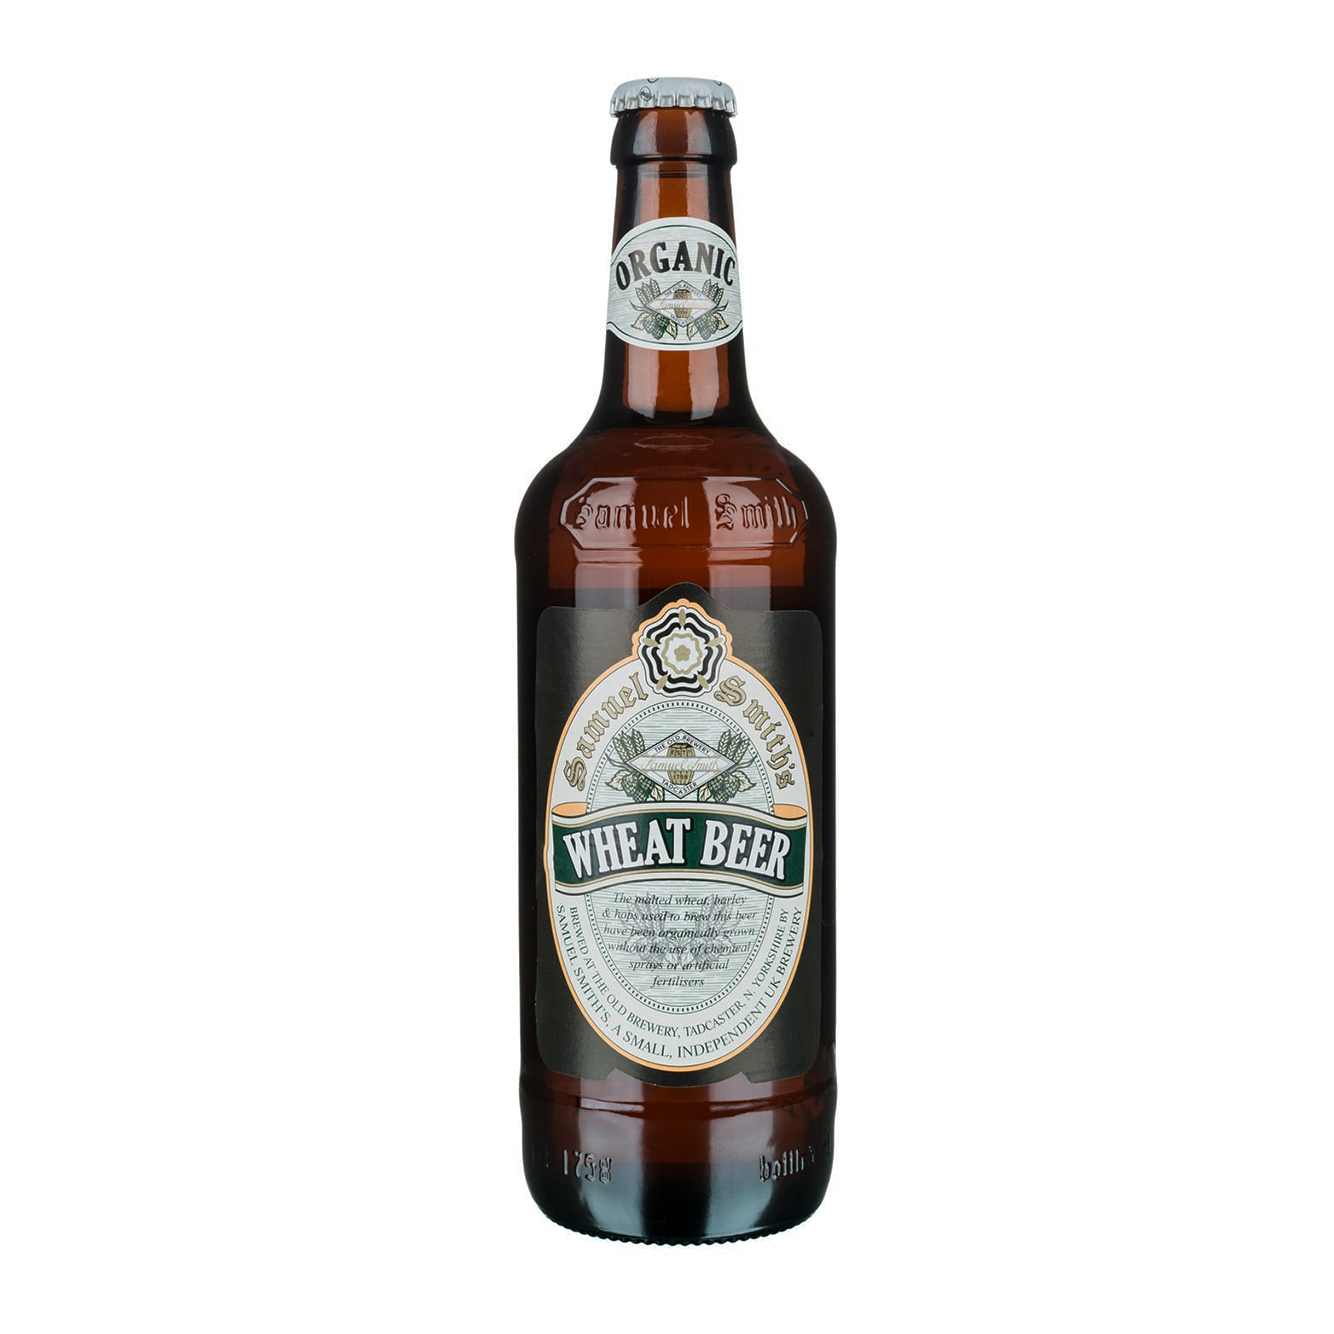 Sam Smith Organic Wheat Beer